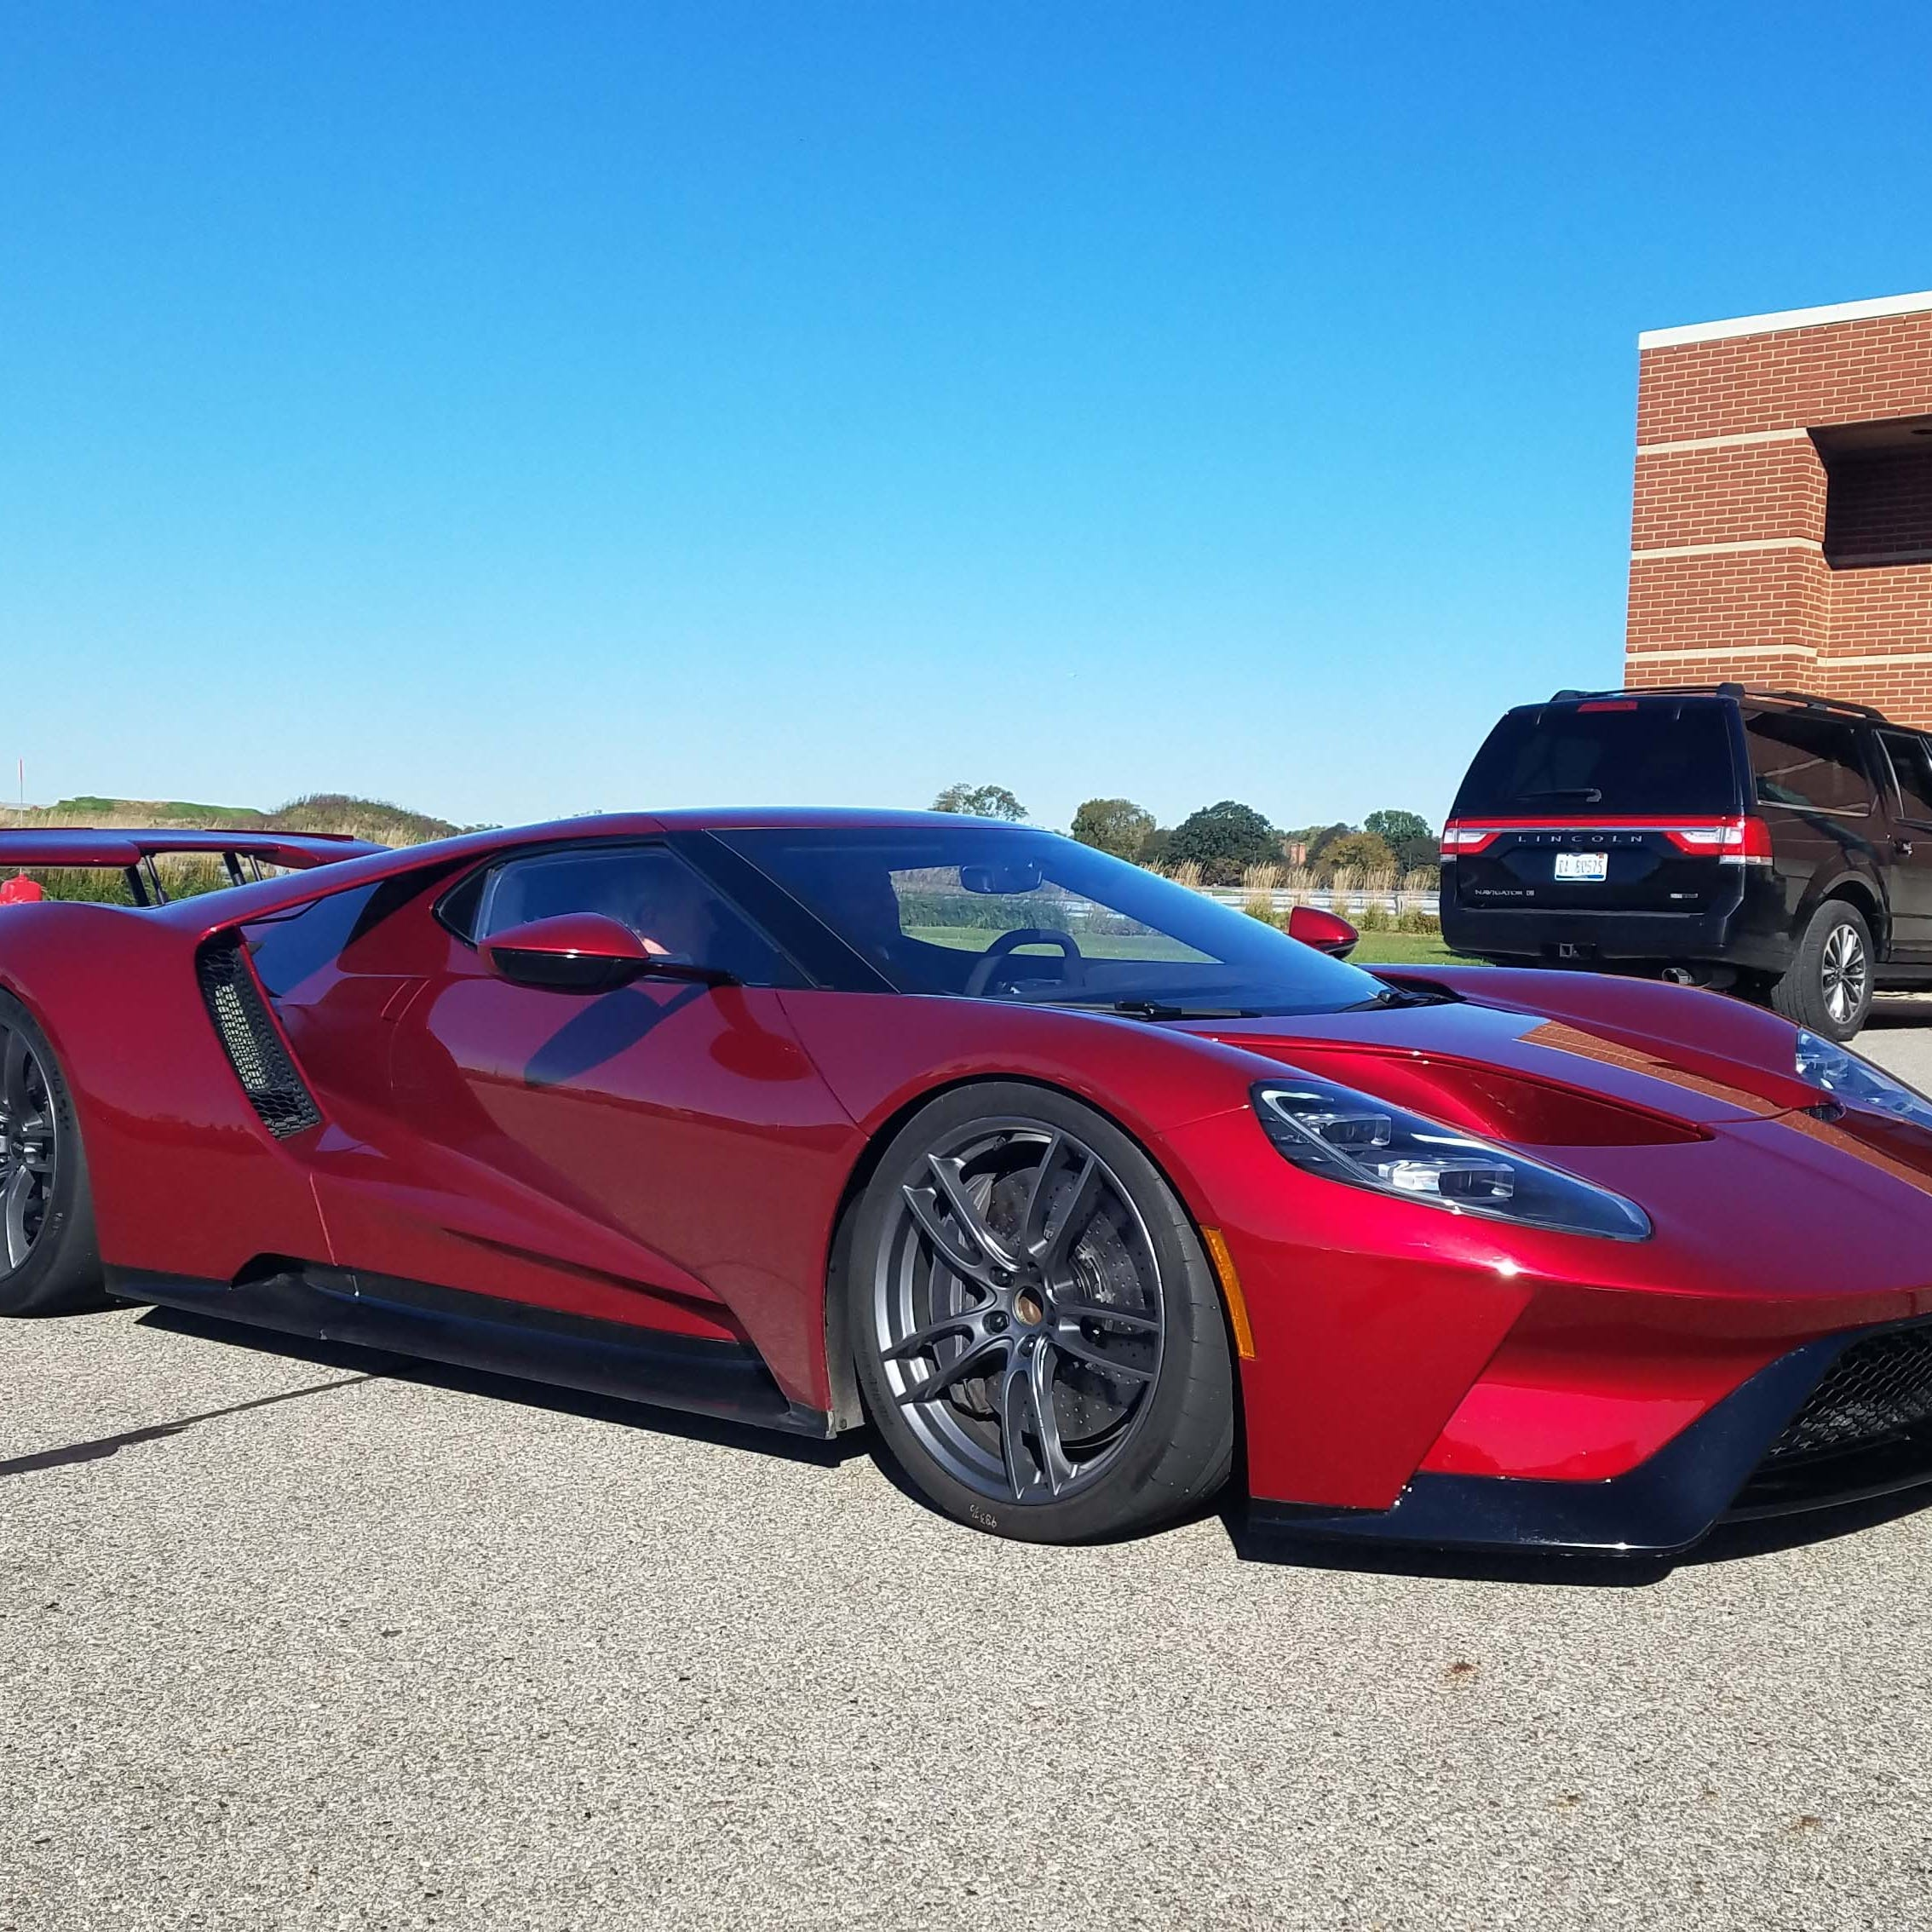 Ford will build more $500K GT supercars